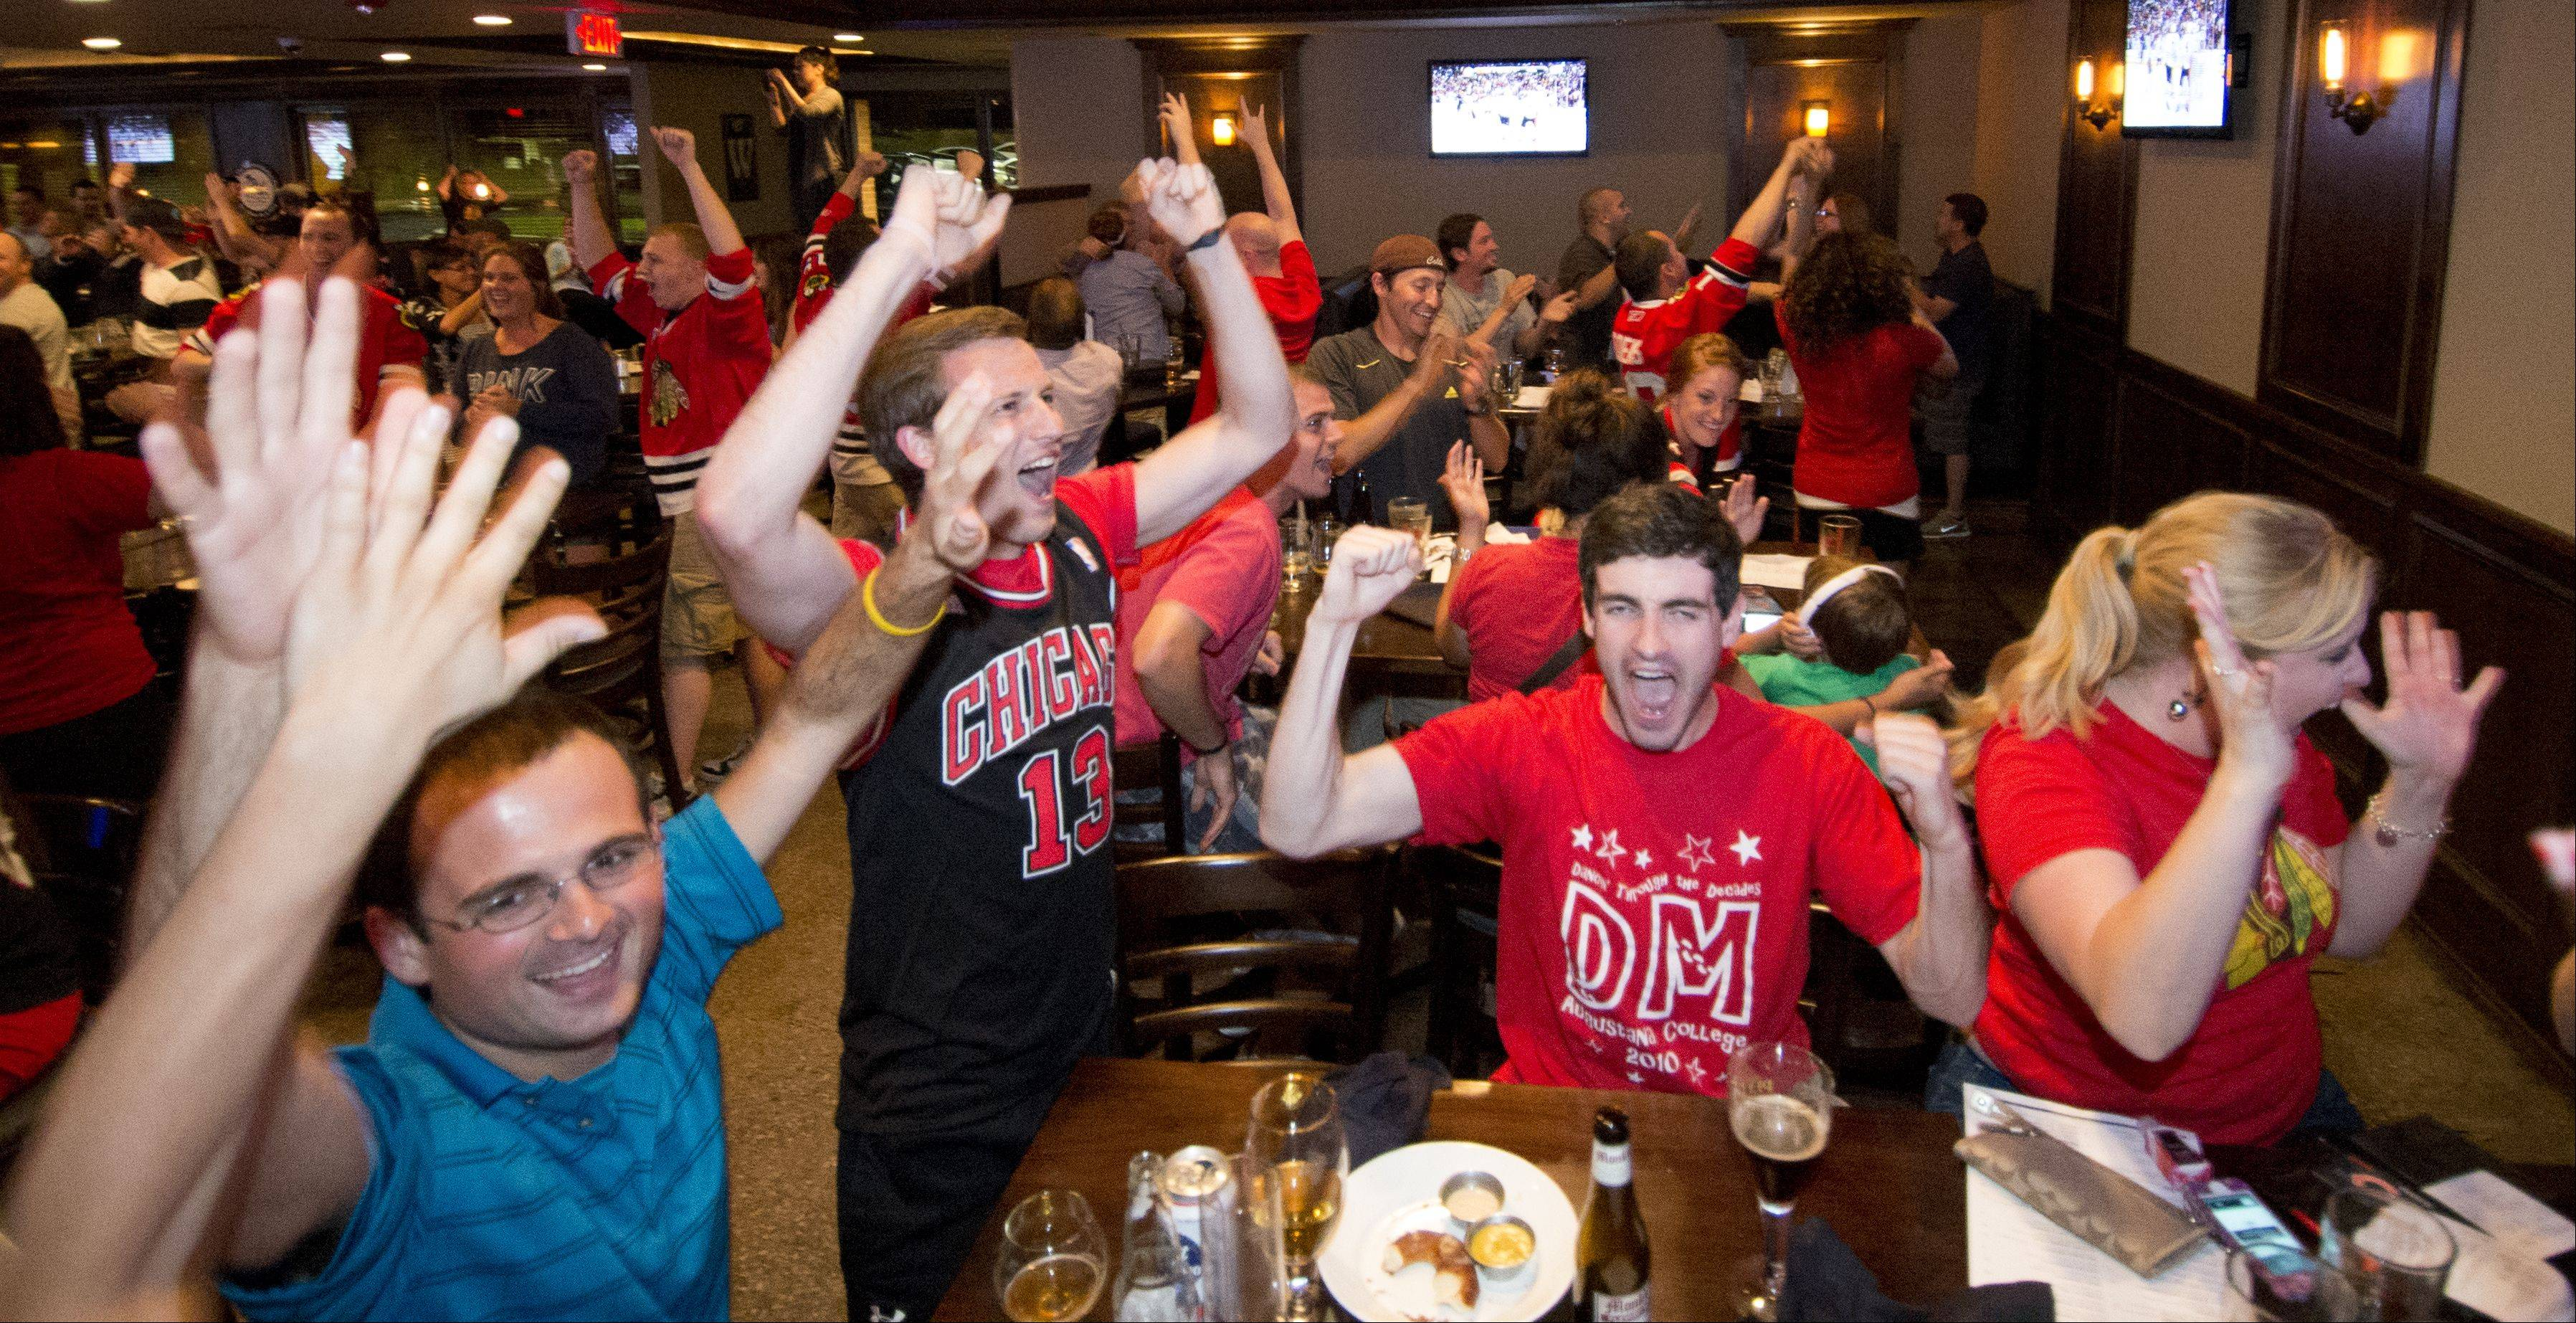 Fans cheer as the Chicago Blackhawks win the Stanley Cup at Warren's Ale House in Wheaton.